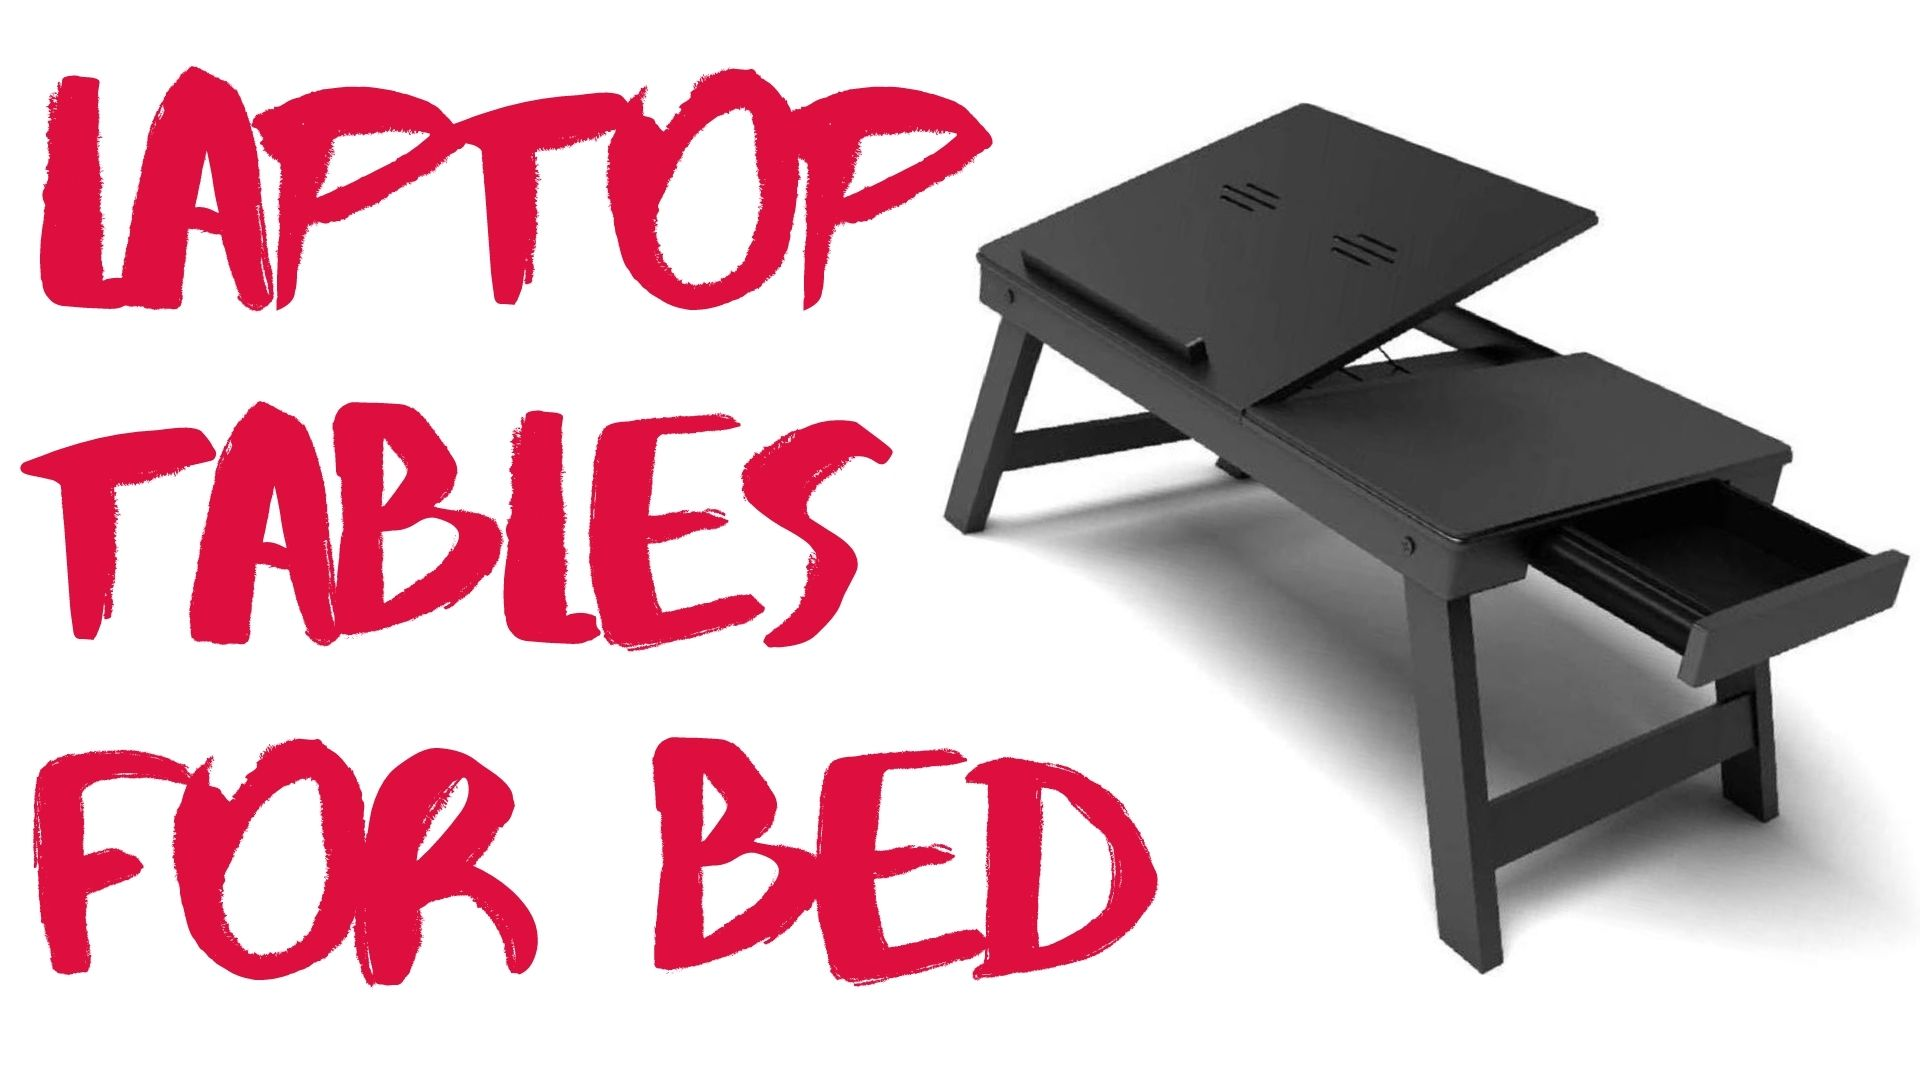 Laptop Tables for Bed